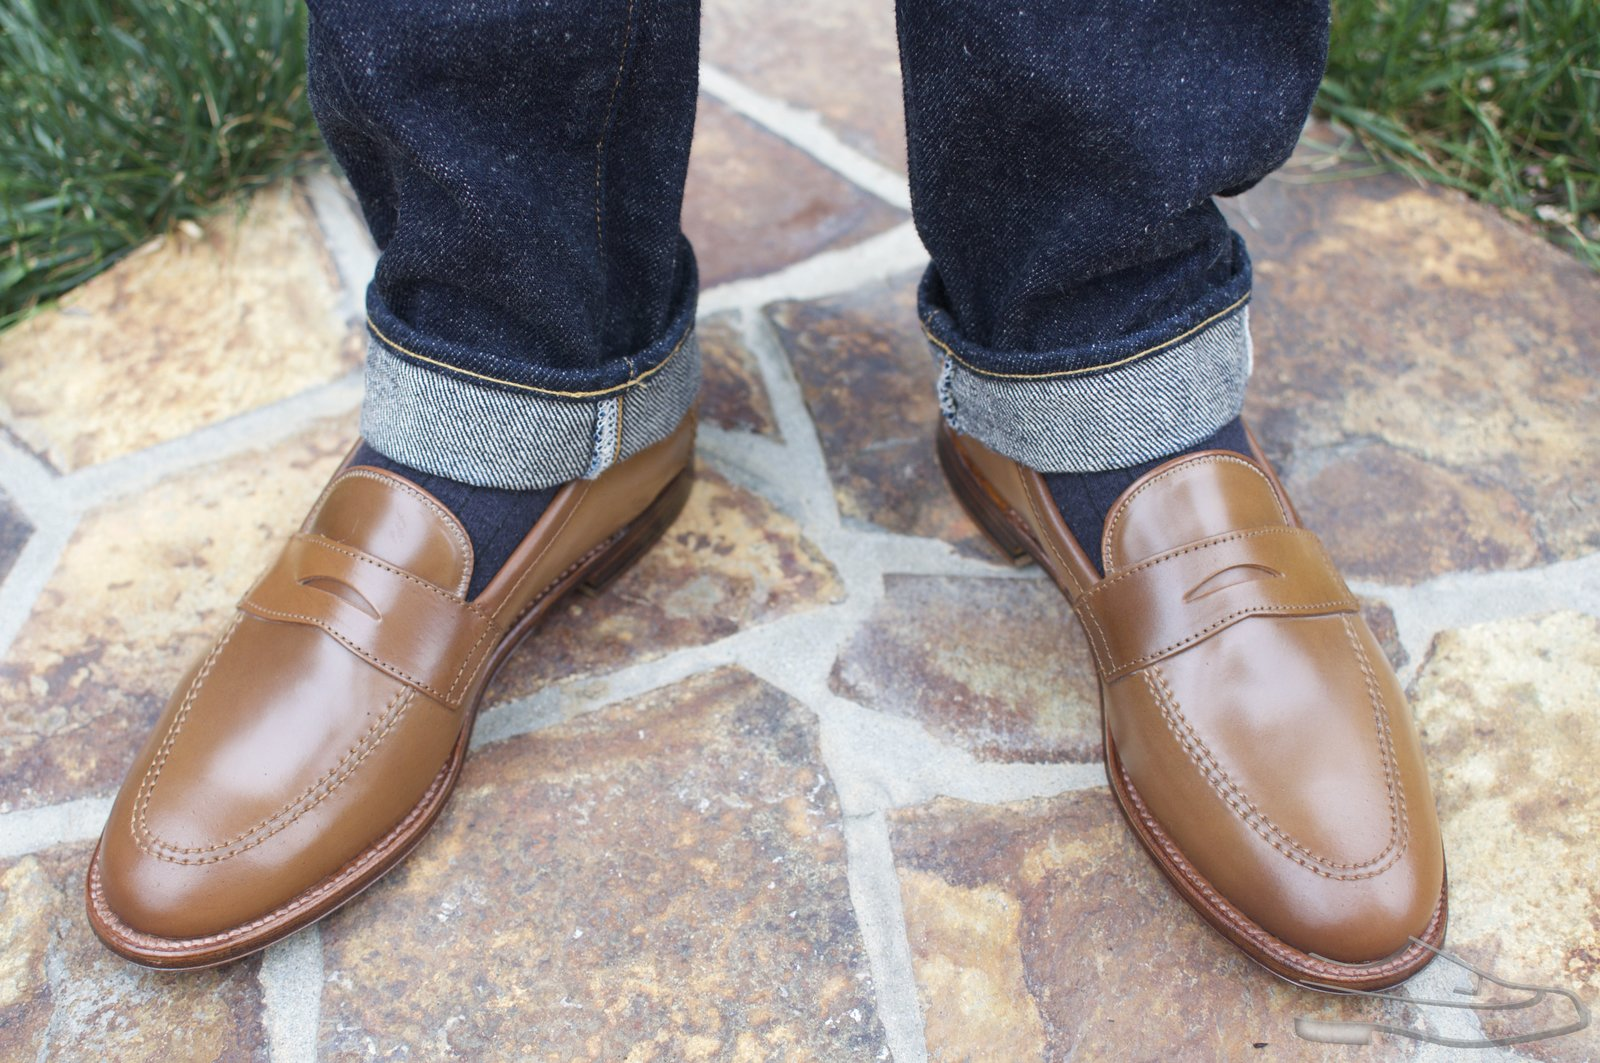 Alden Whiskey Shell Cordovan Penny Loafers - 2021-05-15 - 12.jpg